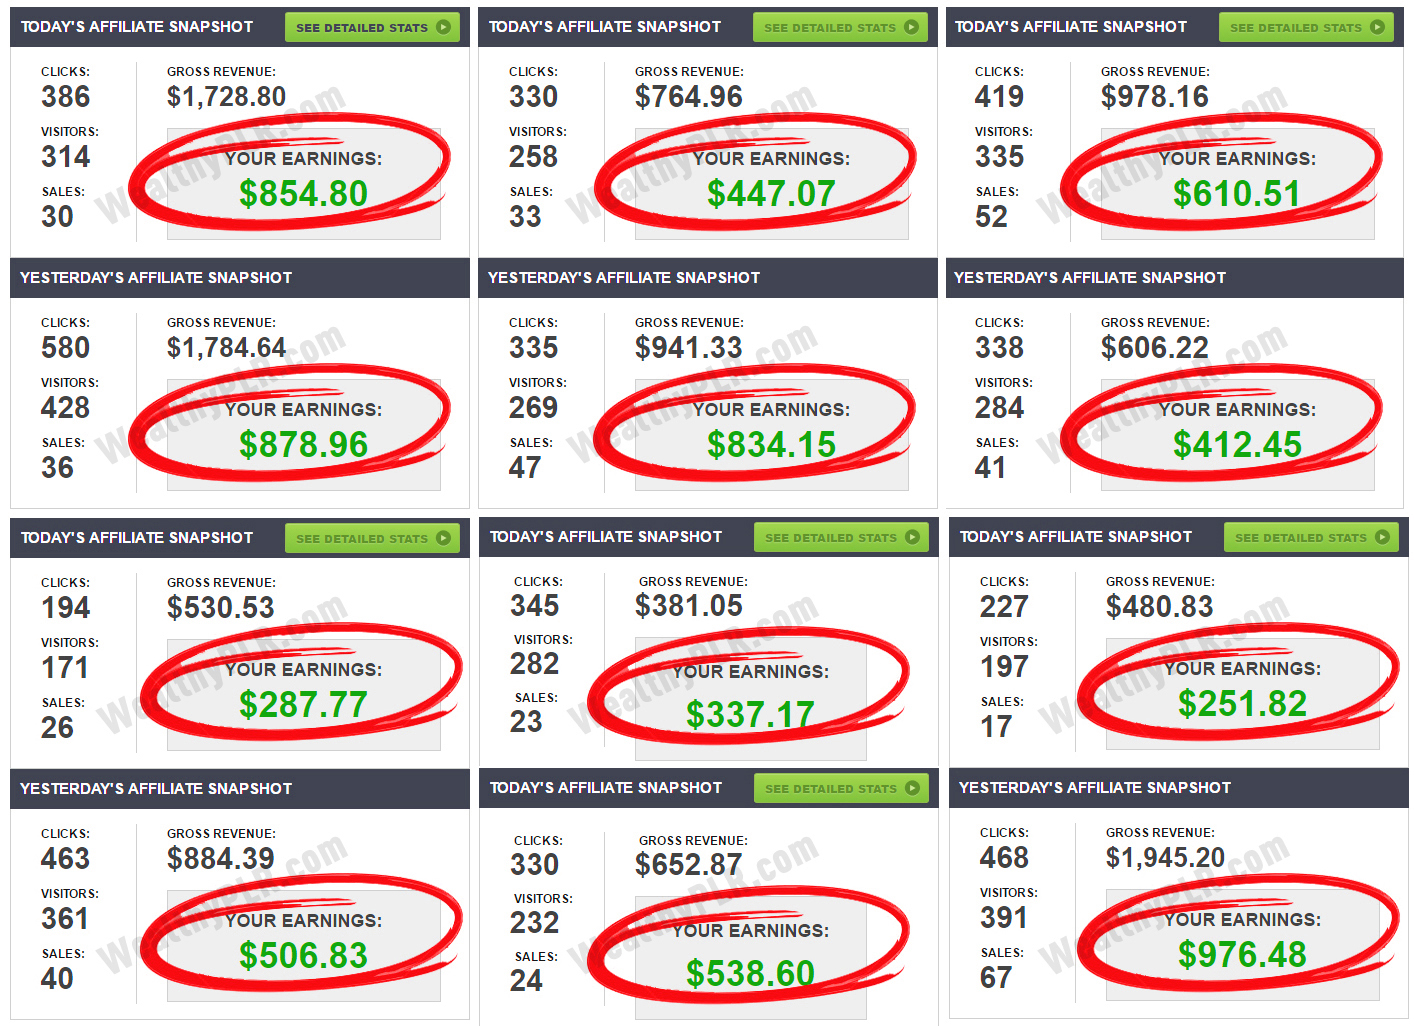 [4 Days Only] Steal Our $33,777.94 Campaign (May 2017) Review –SCAM OR LEGIT? : Legally Steal 33 'No-Pitch Style' Email Series From The Creators That Generated $33,777.94 Sales And Over $18,000+ Net Profit In Under 40 Days